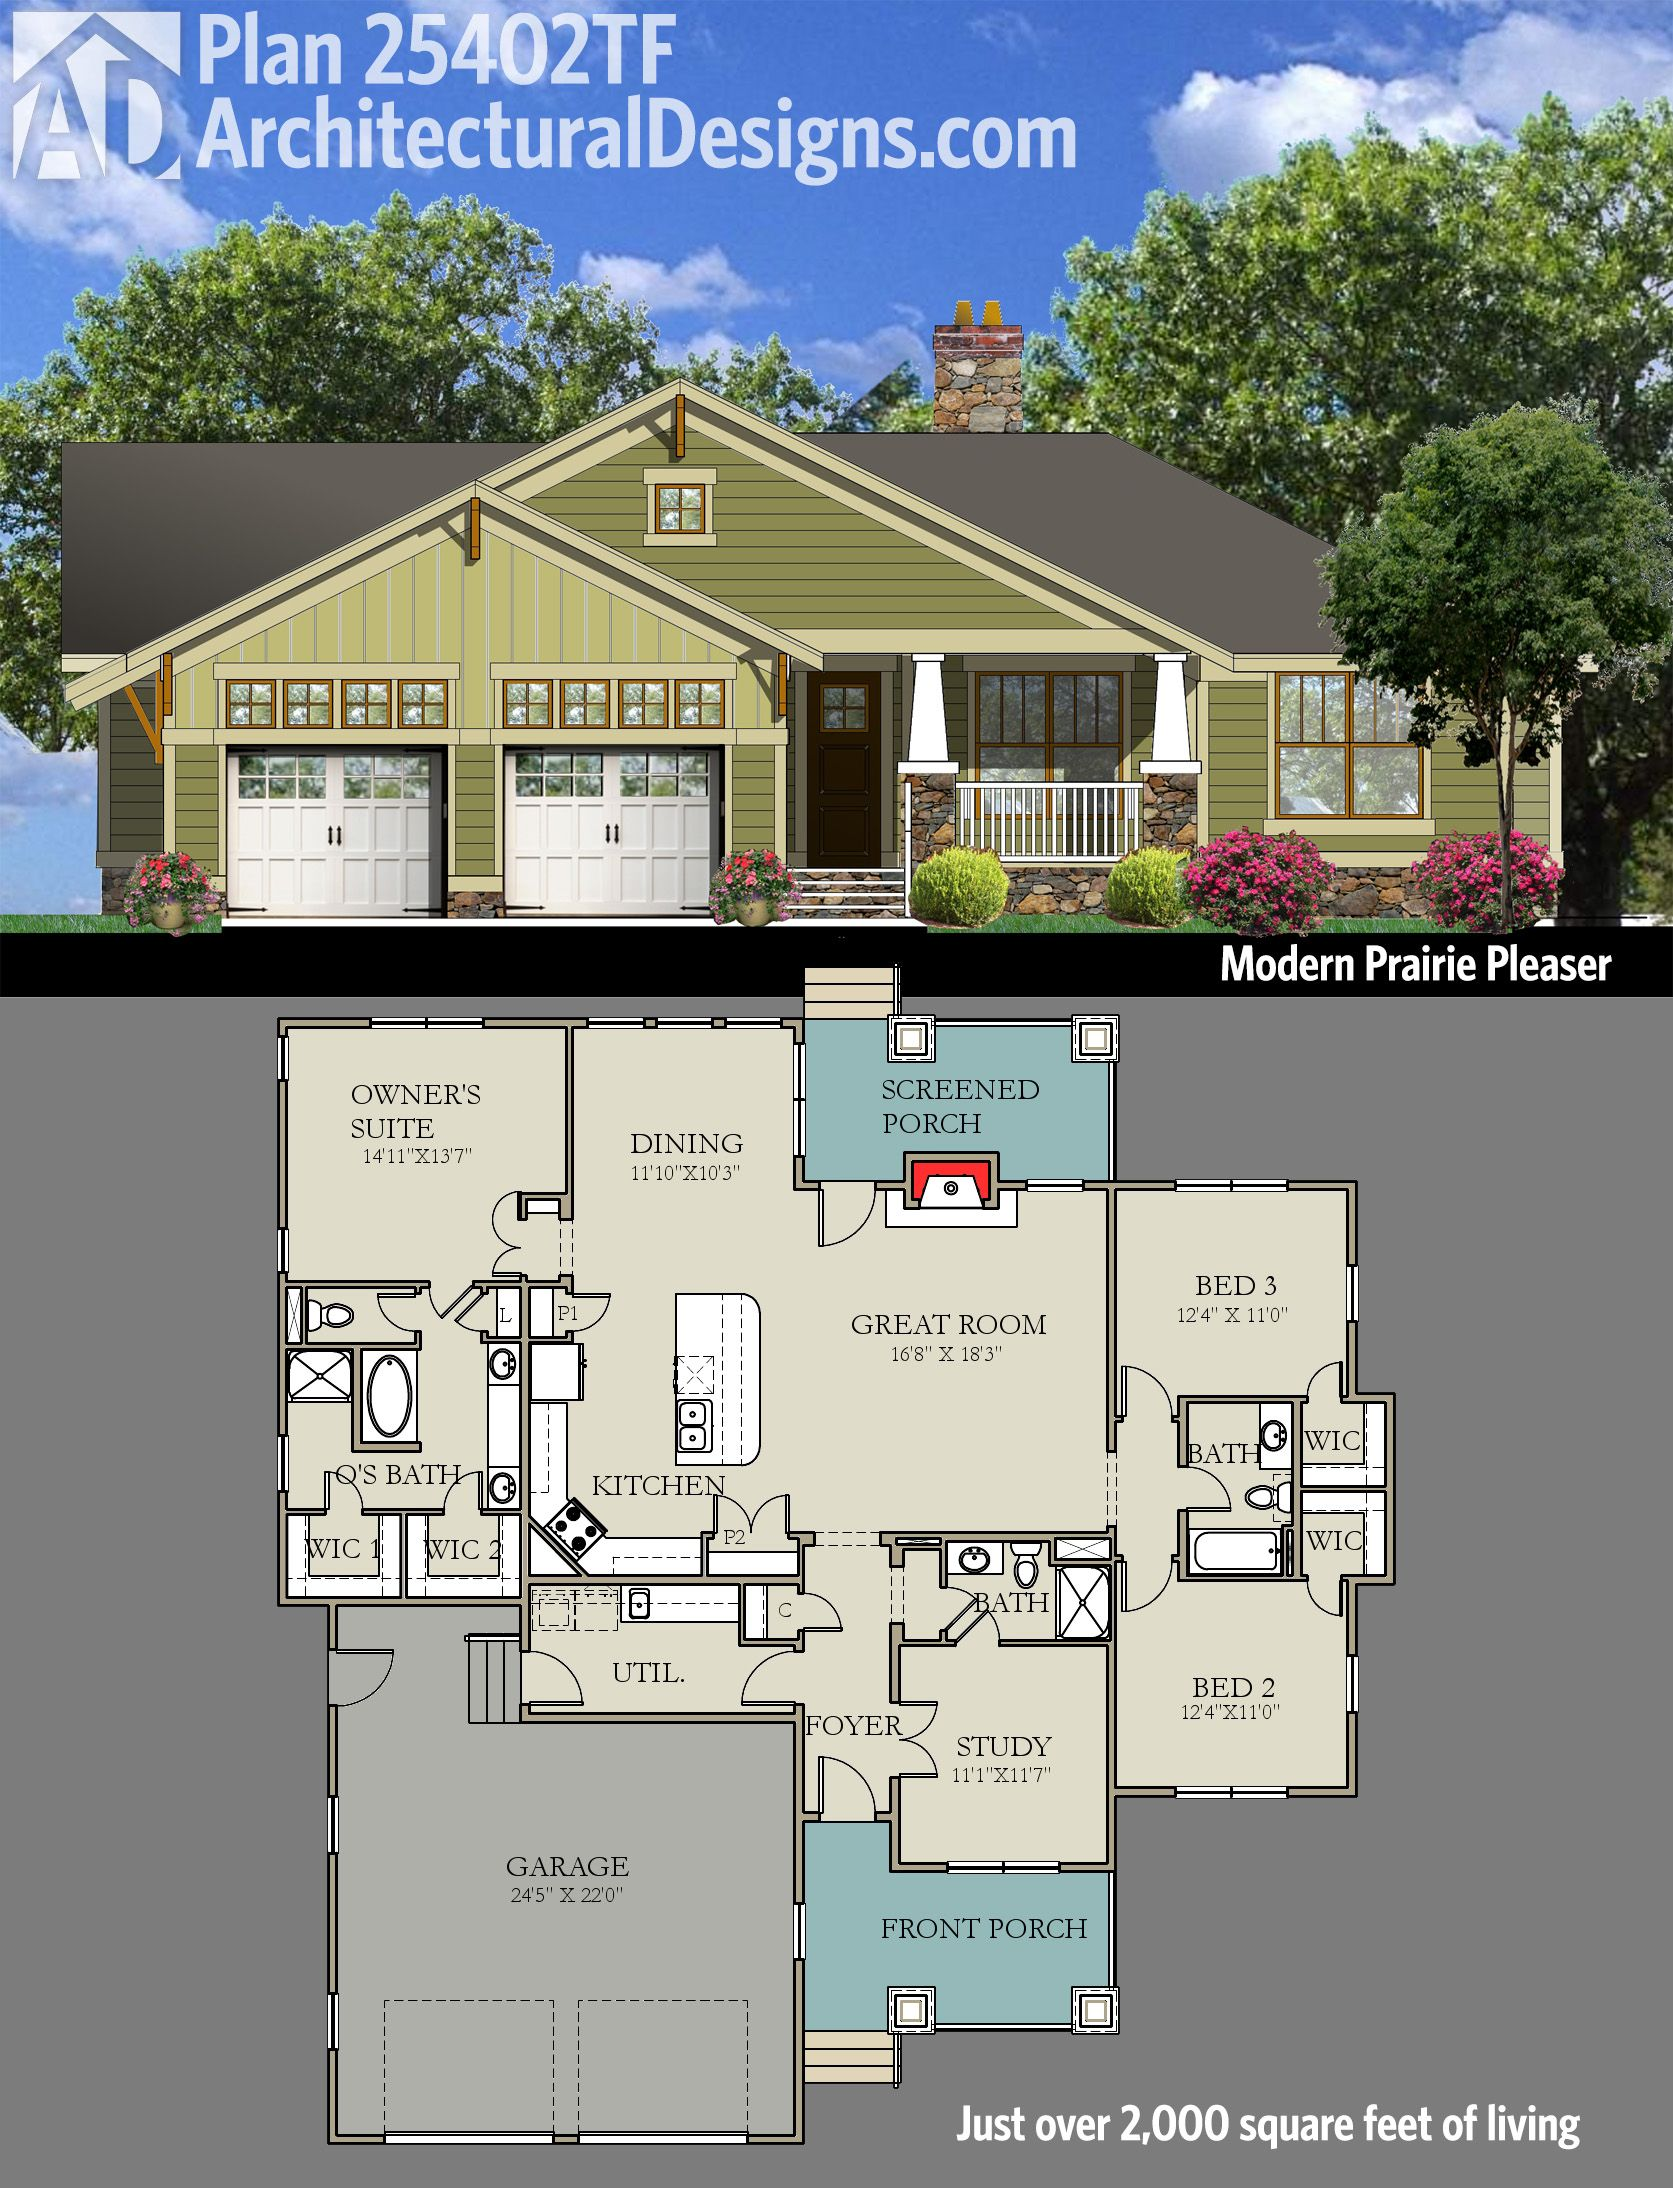 Plan 25402tf modern prairie pleaser bungalow square for Layout design of bungalows